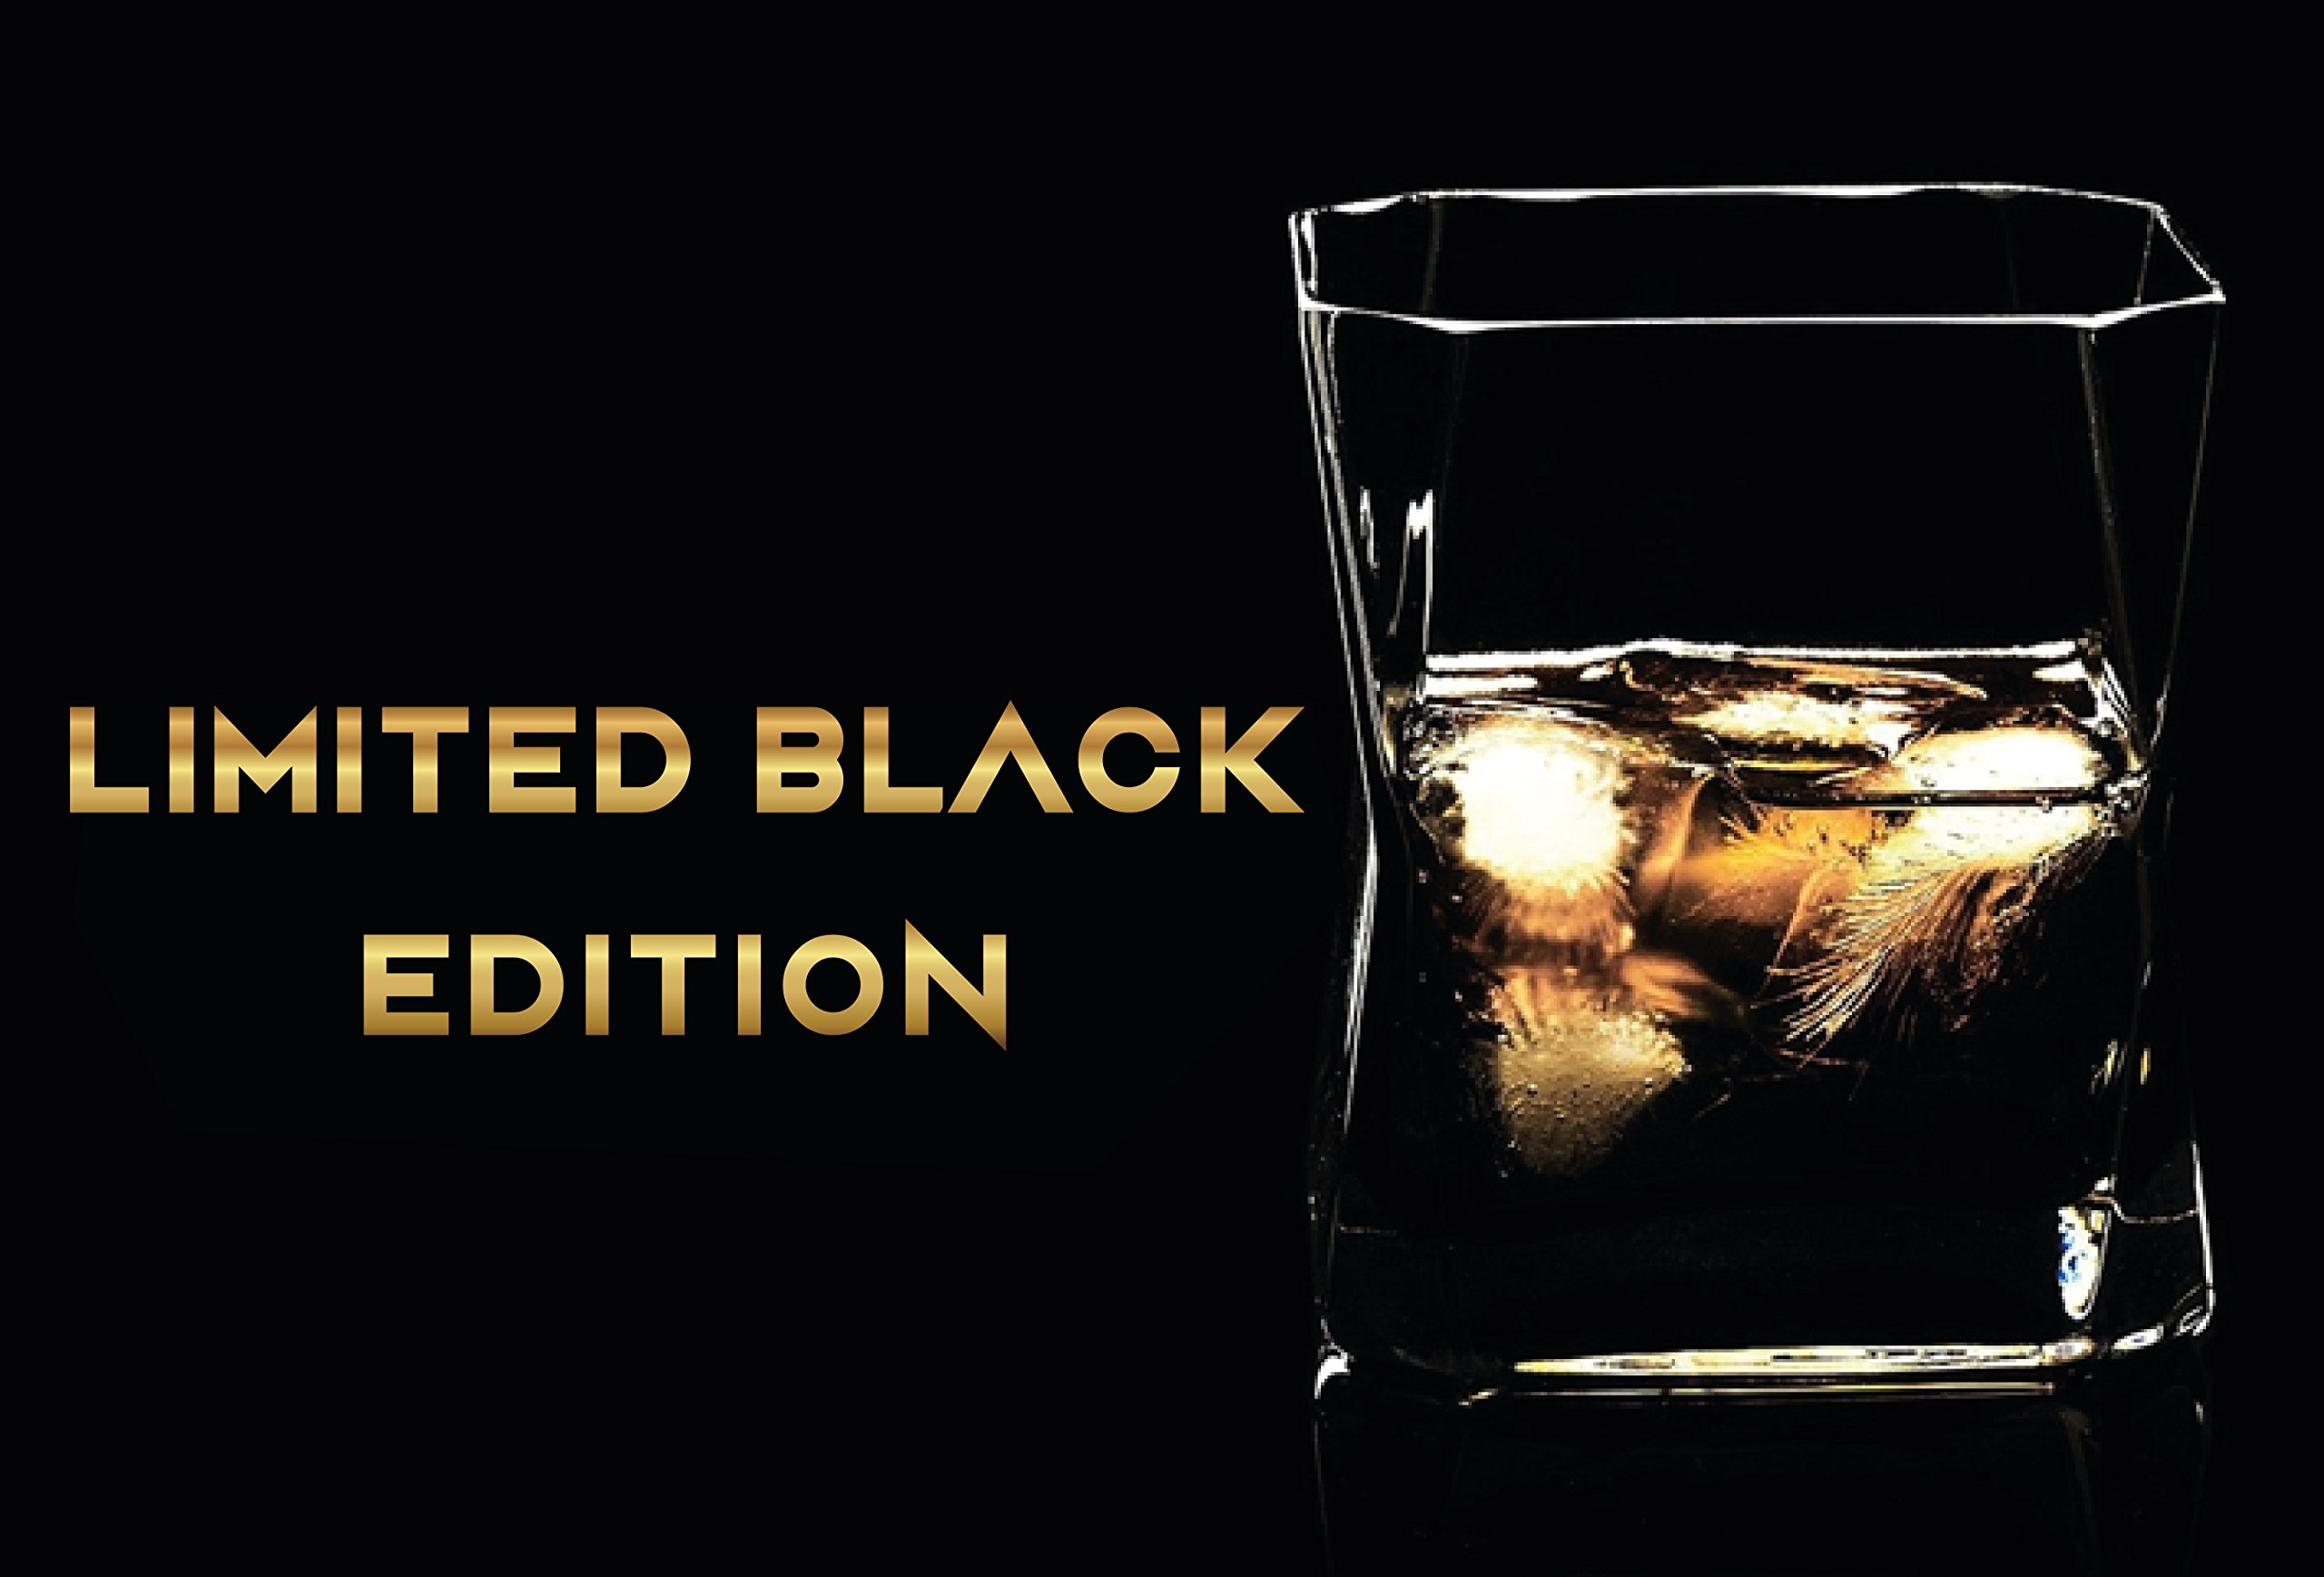 Whiskey Glasses Set of 2 in Gift Box- New Style Old Fashioned Drink Glasses - Glassware set - Scotch Brandy or Bourbon Tumblers, 10.5 oz. (Dark Black, Glass) by NICELY HOME (Image #6)